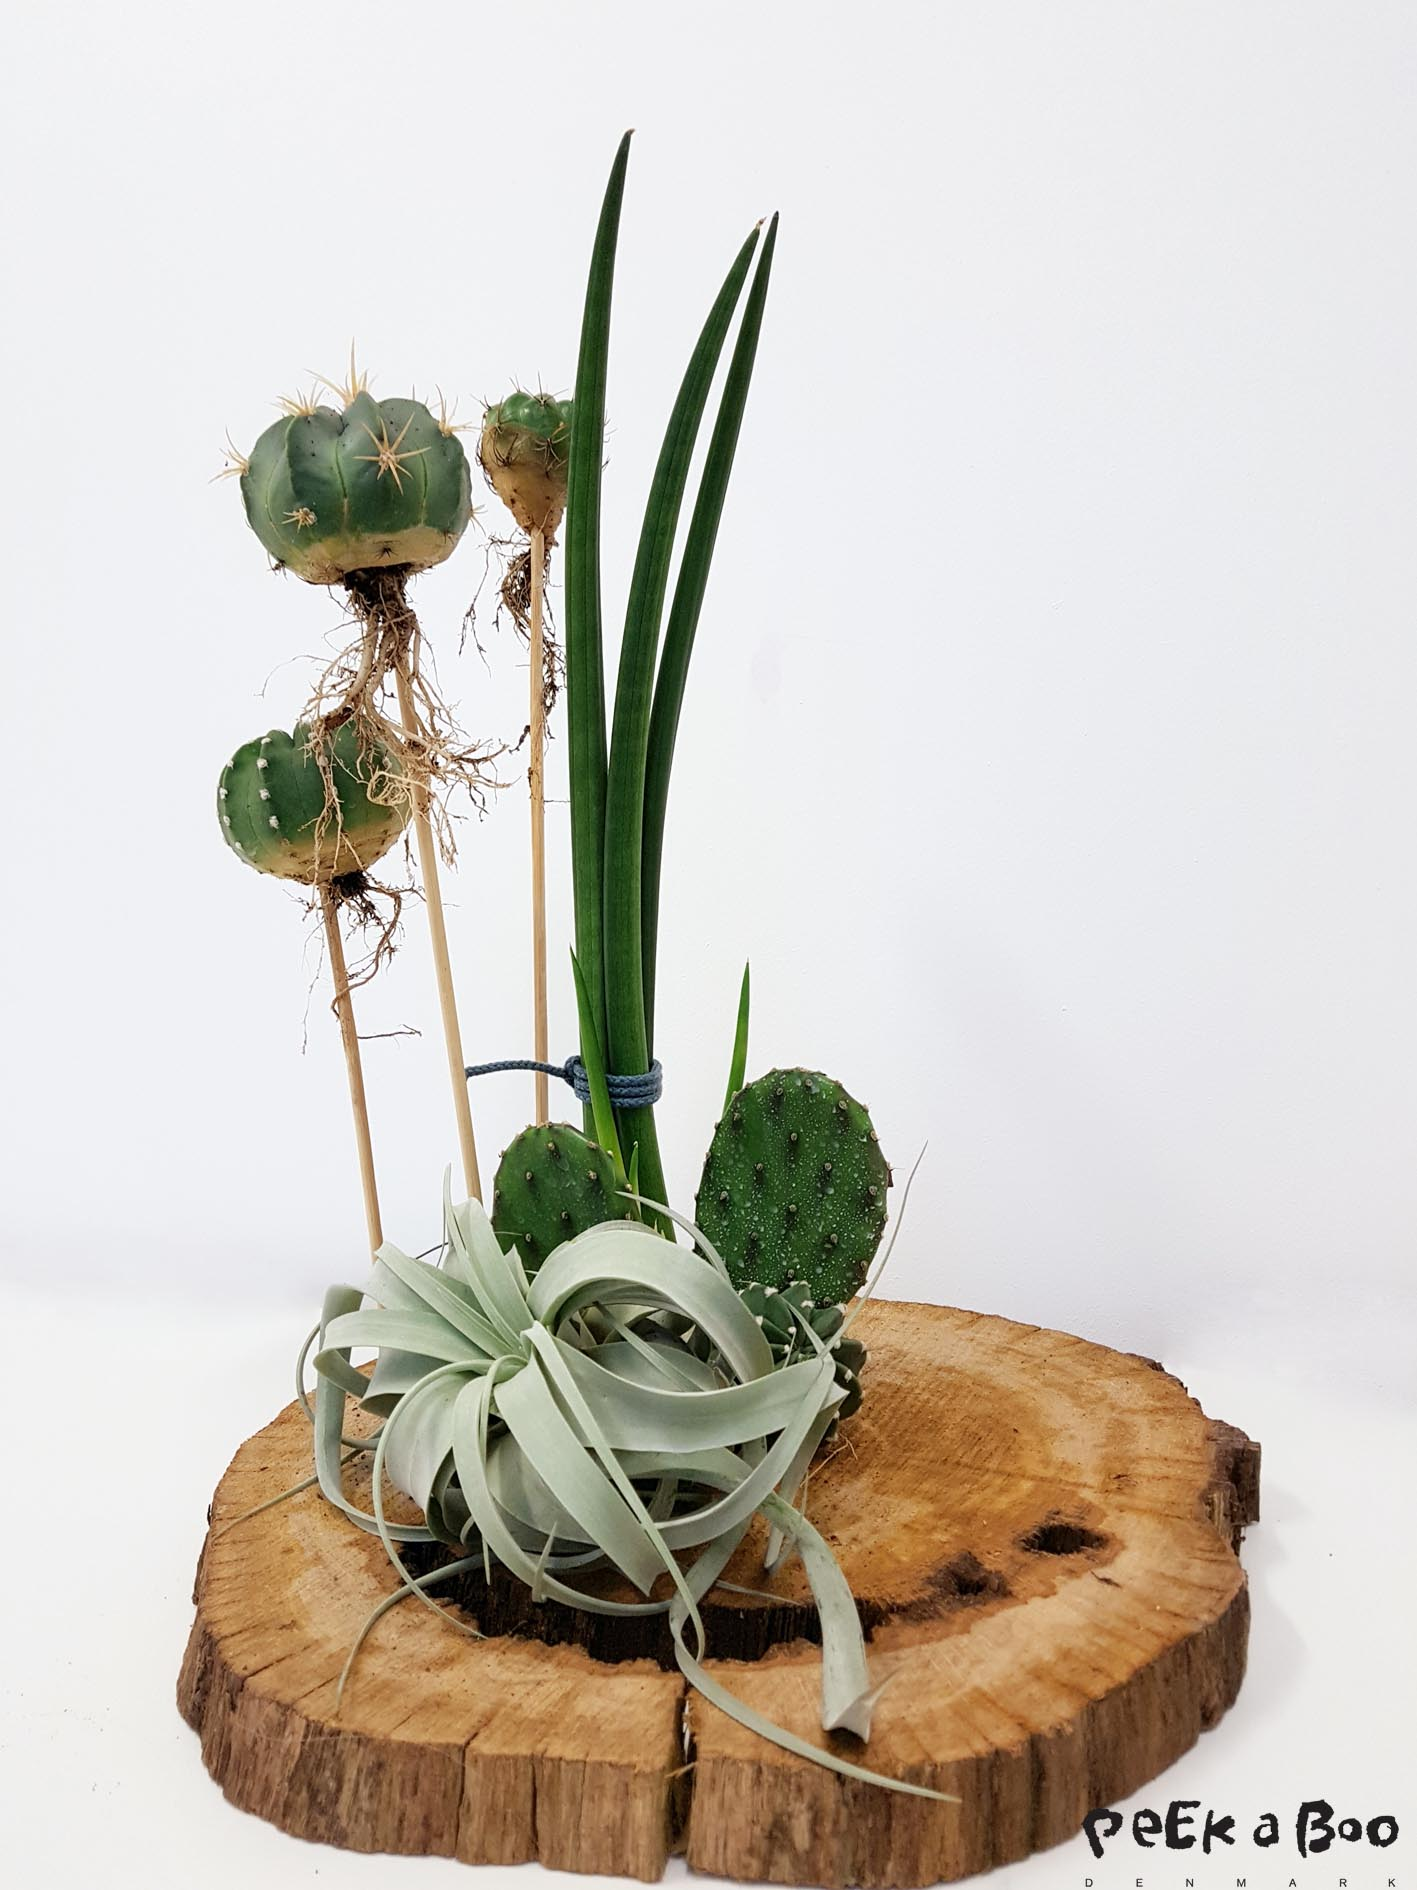 My cactus and airplant decoration from the workshop.